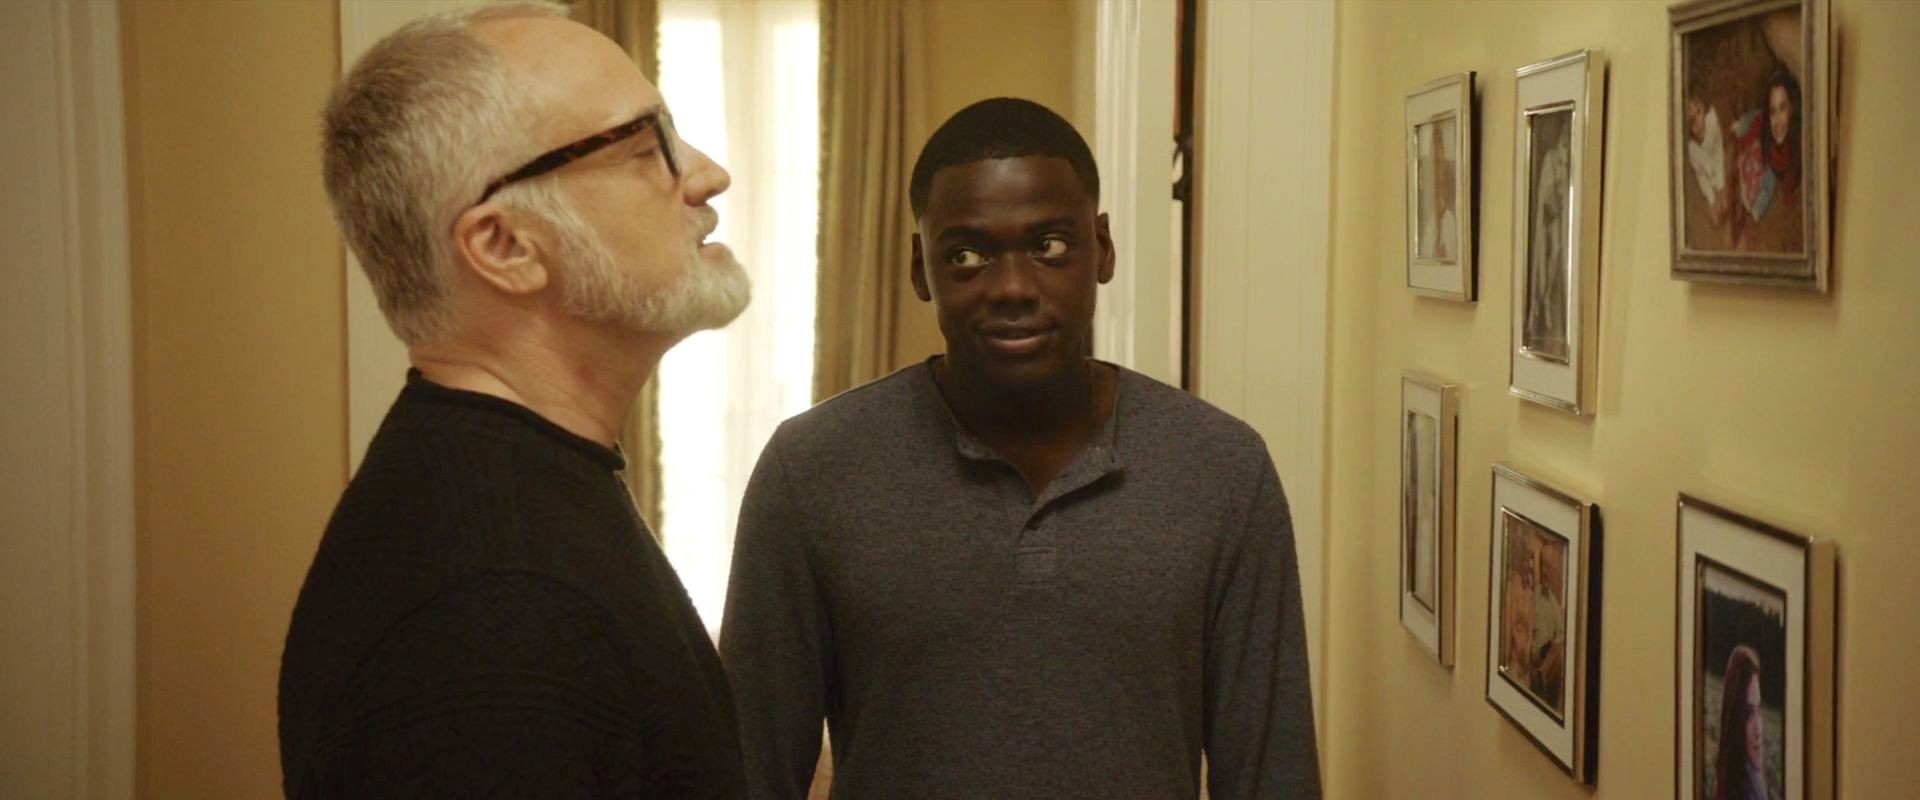 Bradley Whitford and Daniel Kaluuya in Get Out (2017)